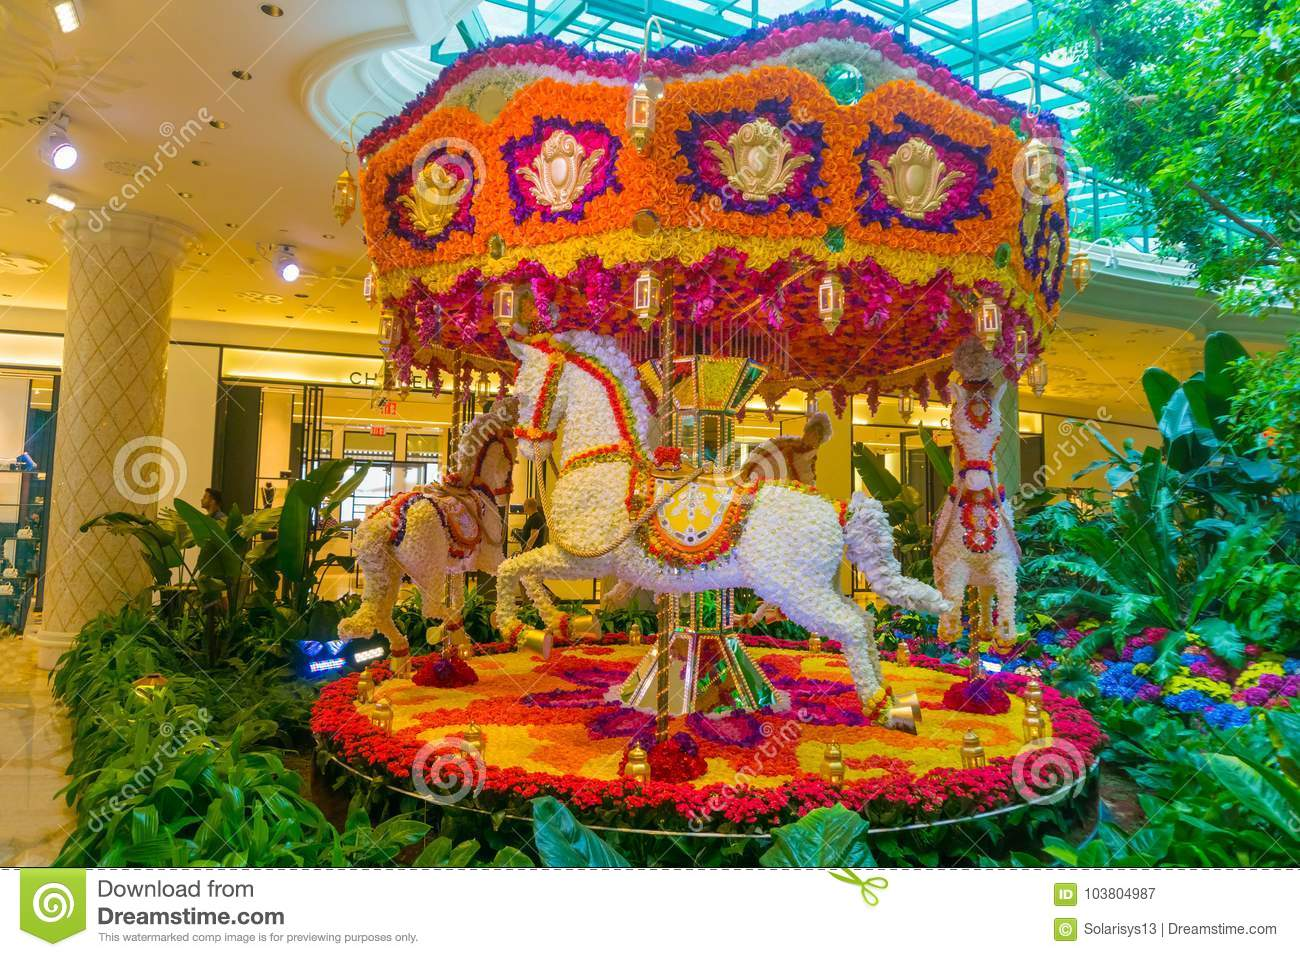 Las Vegas United States Of America May 06 2016 Flowers Installation At The Wynn Hotel And Casino Editorial Photography Image Of Gambling Poker 103804987